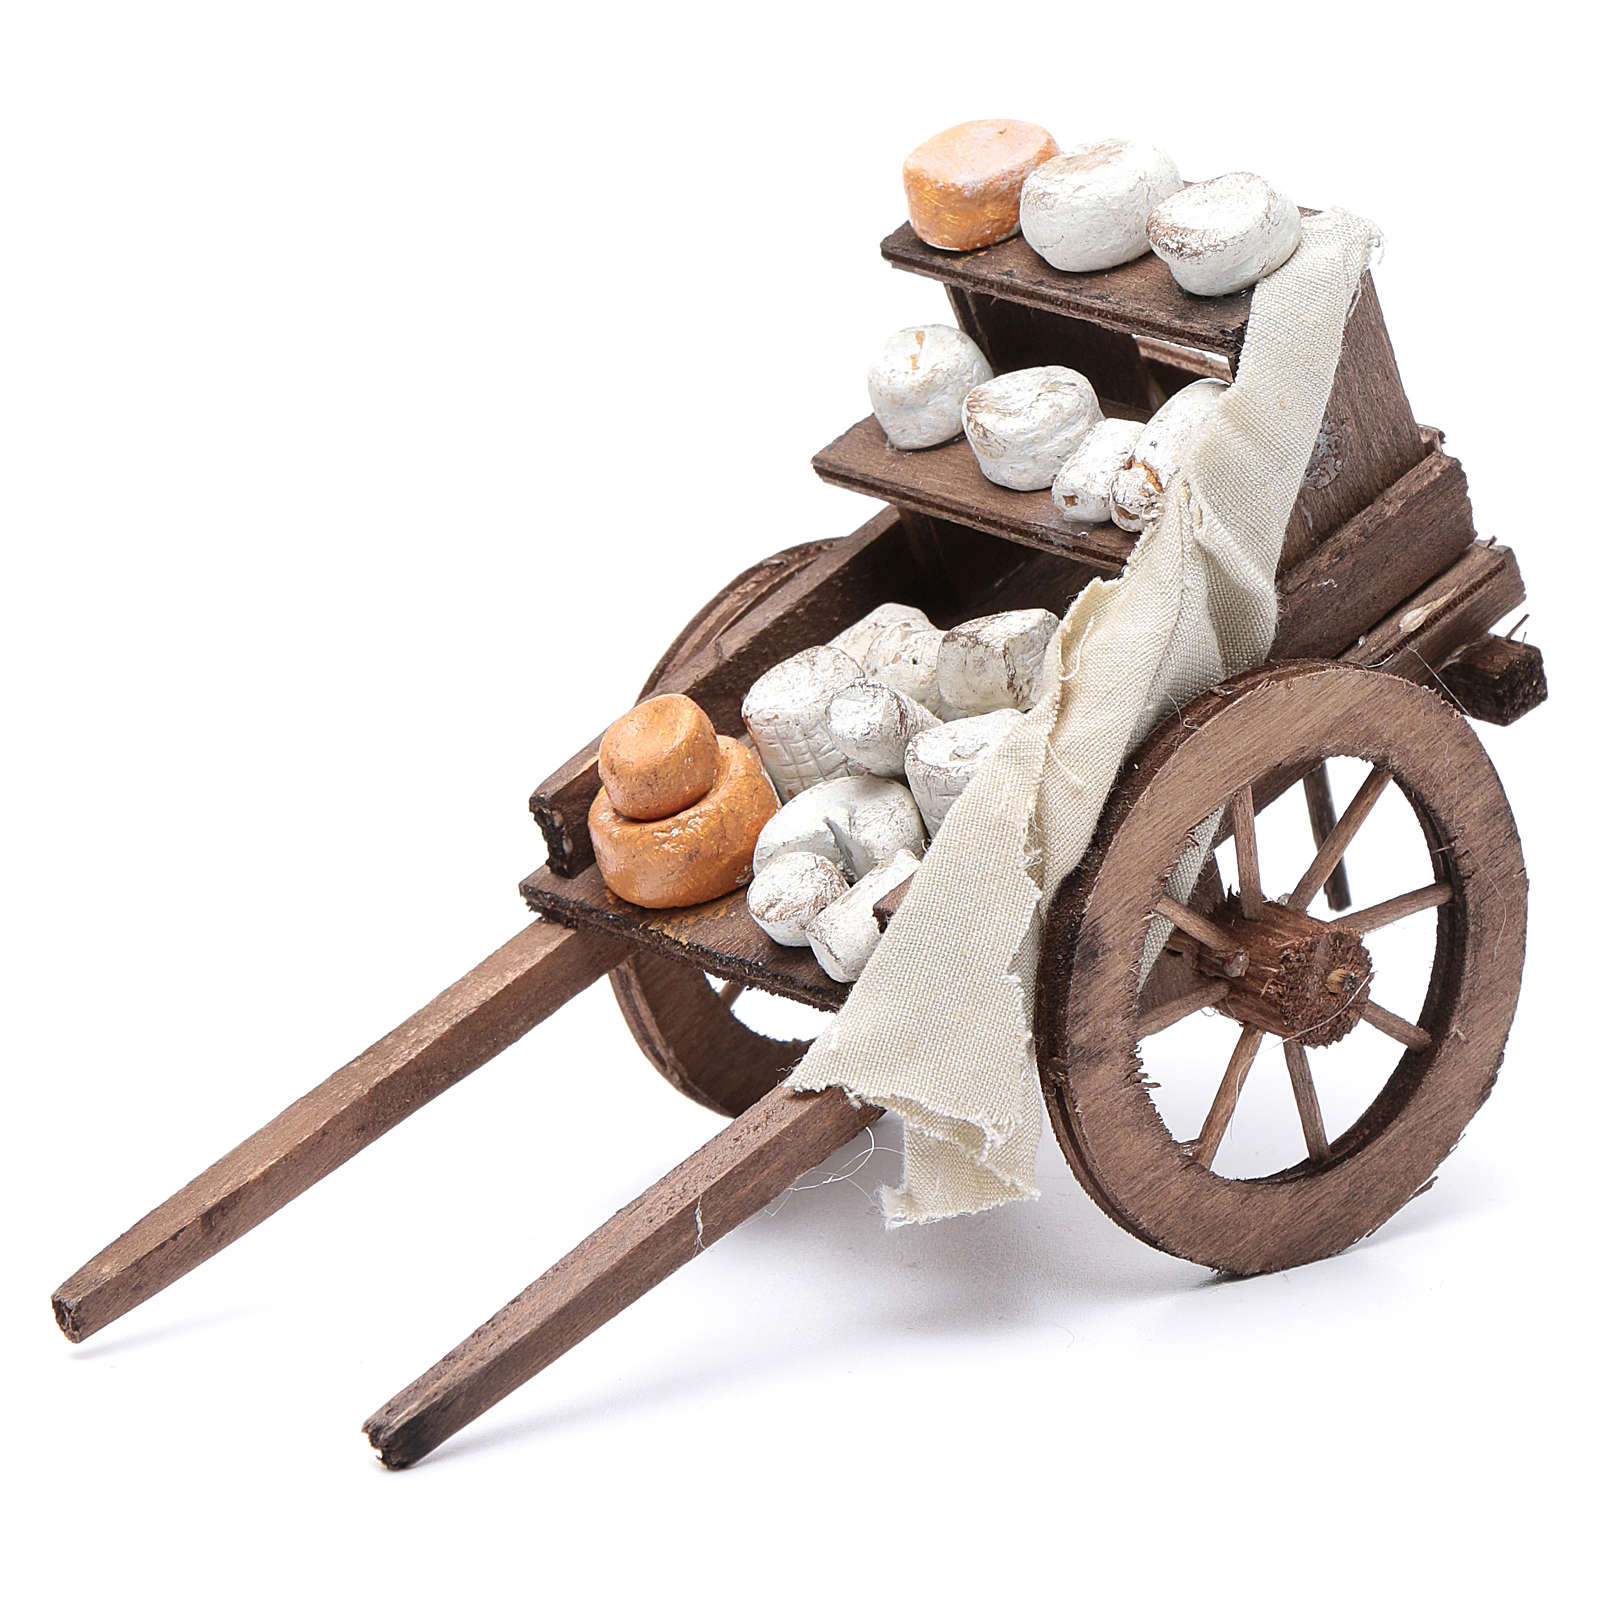 Cart with cheeses, Neapolitan Nativity 10x18x8cm 4